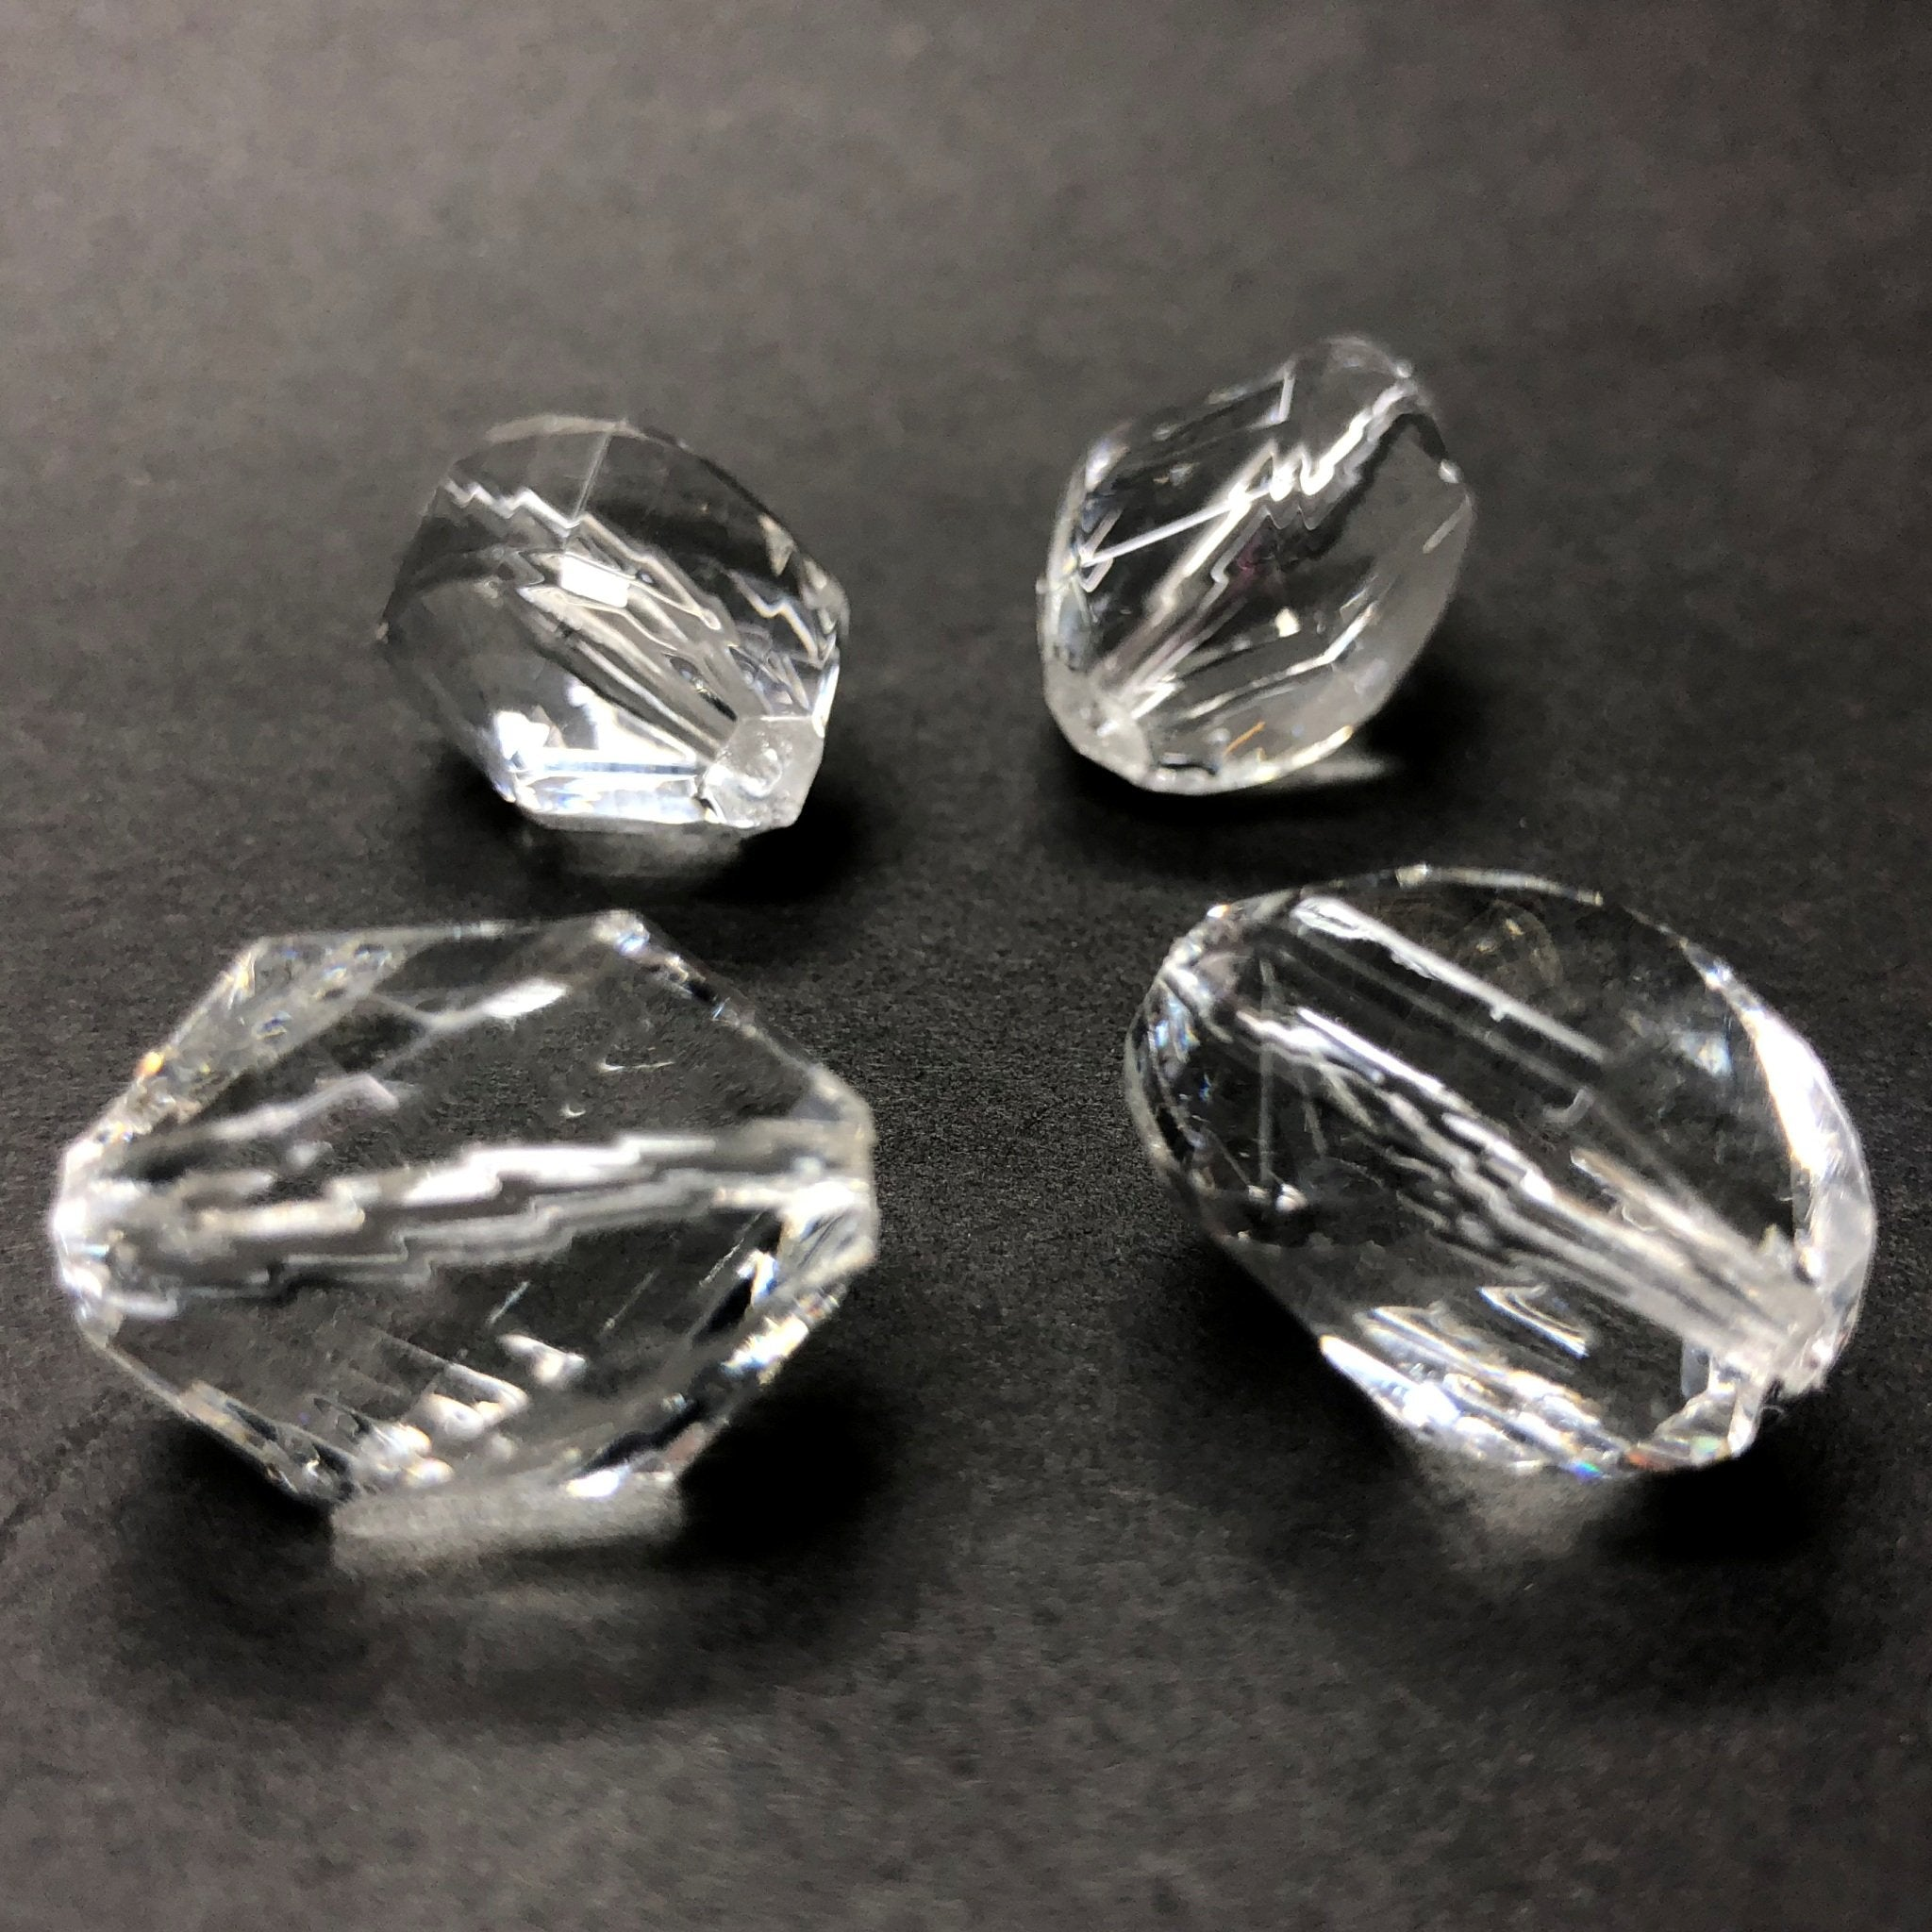 15X11MM Crystal Faceted Oval Acrylic Bead (72 pieces)